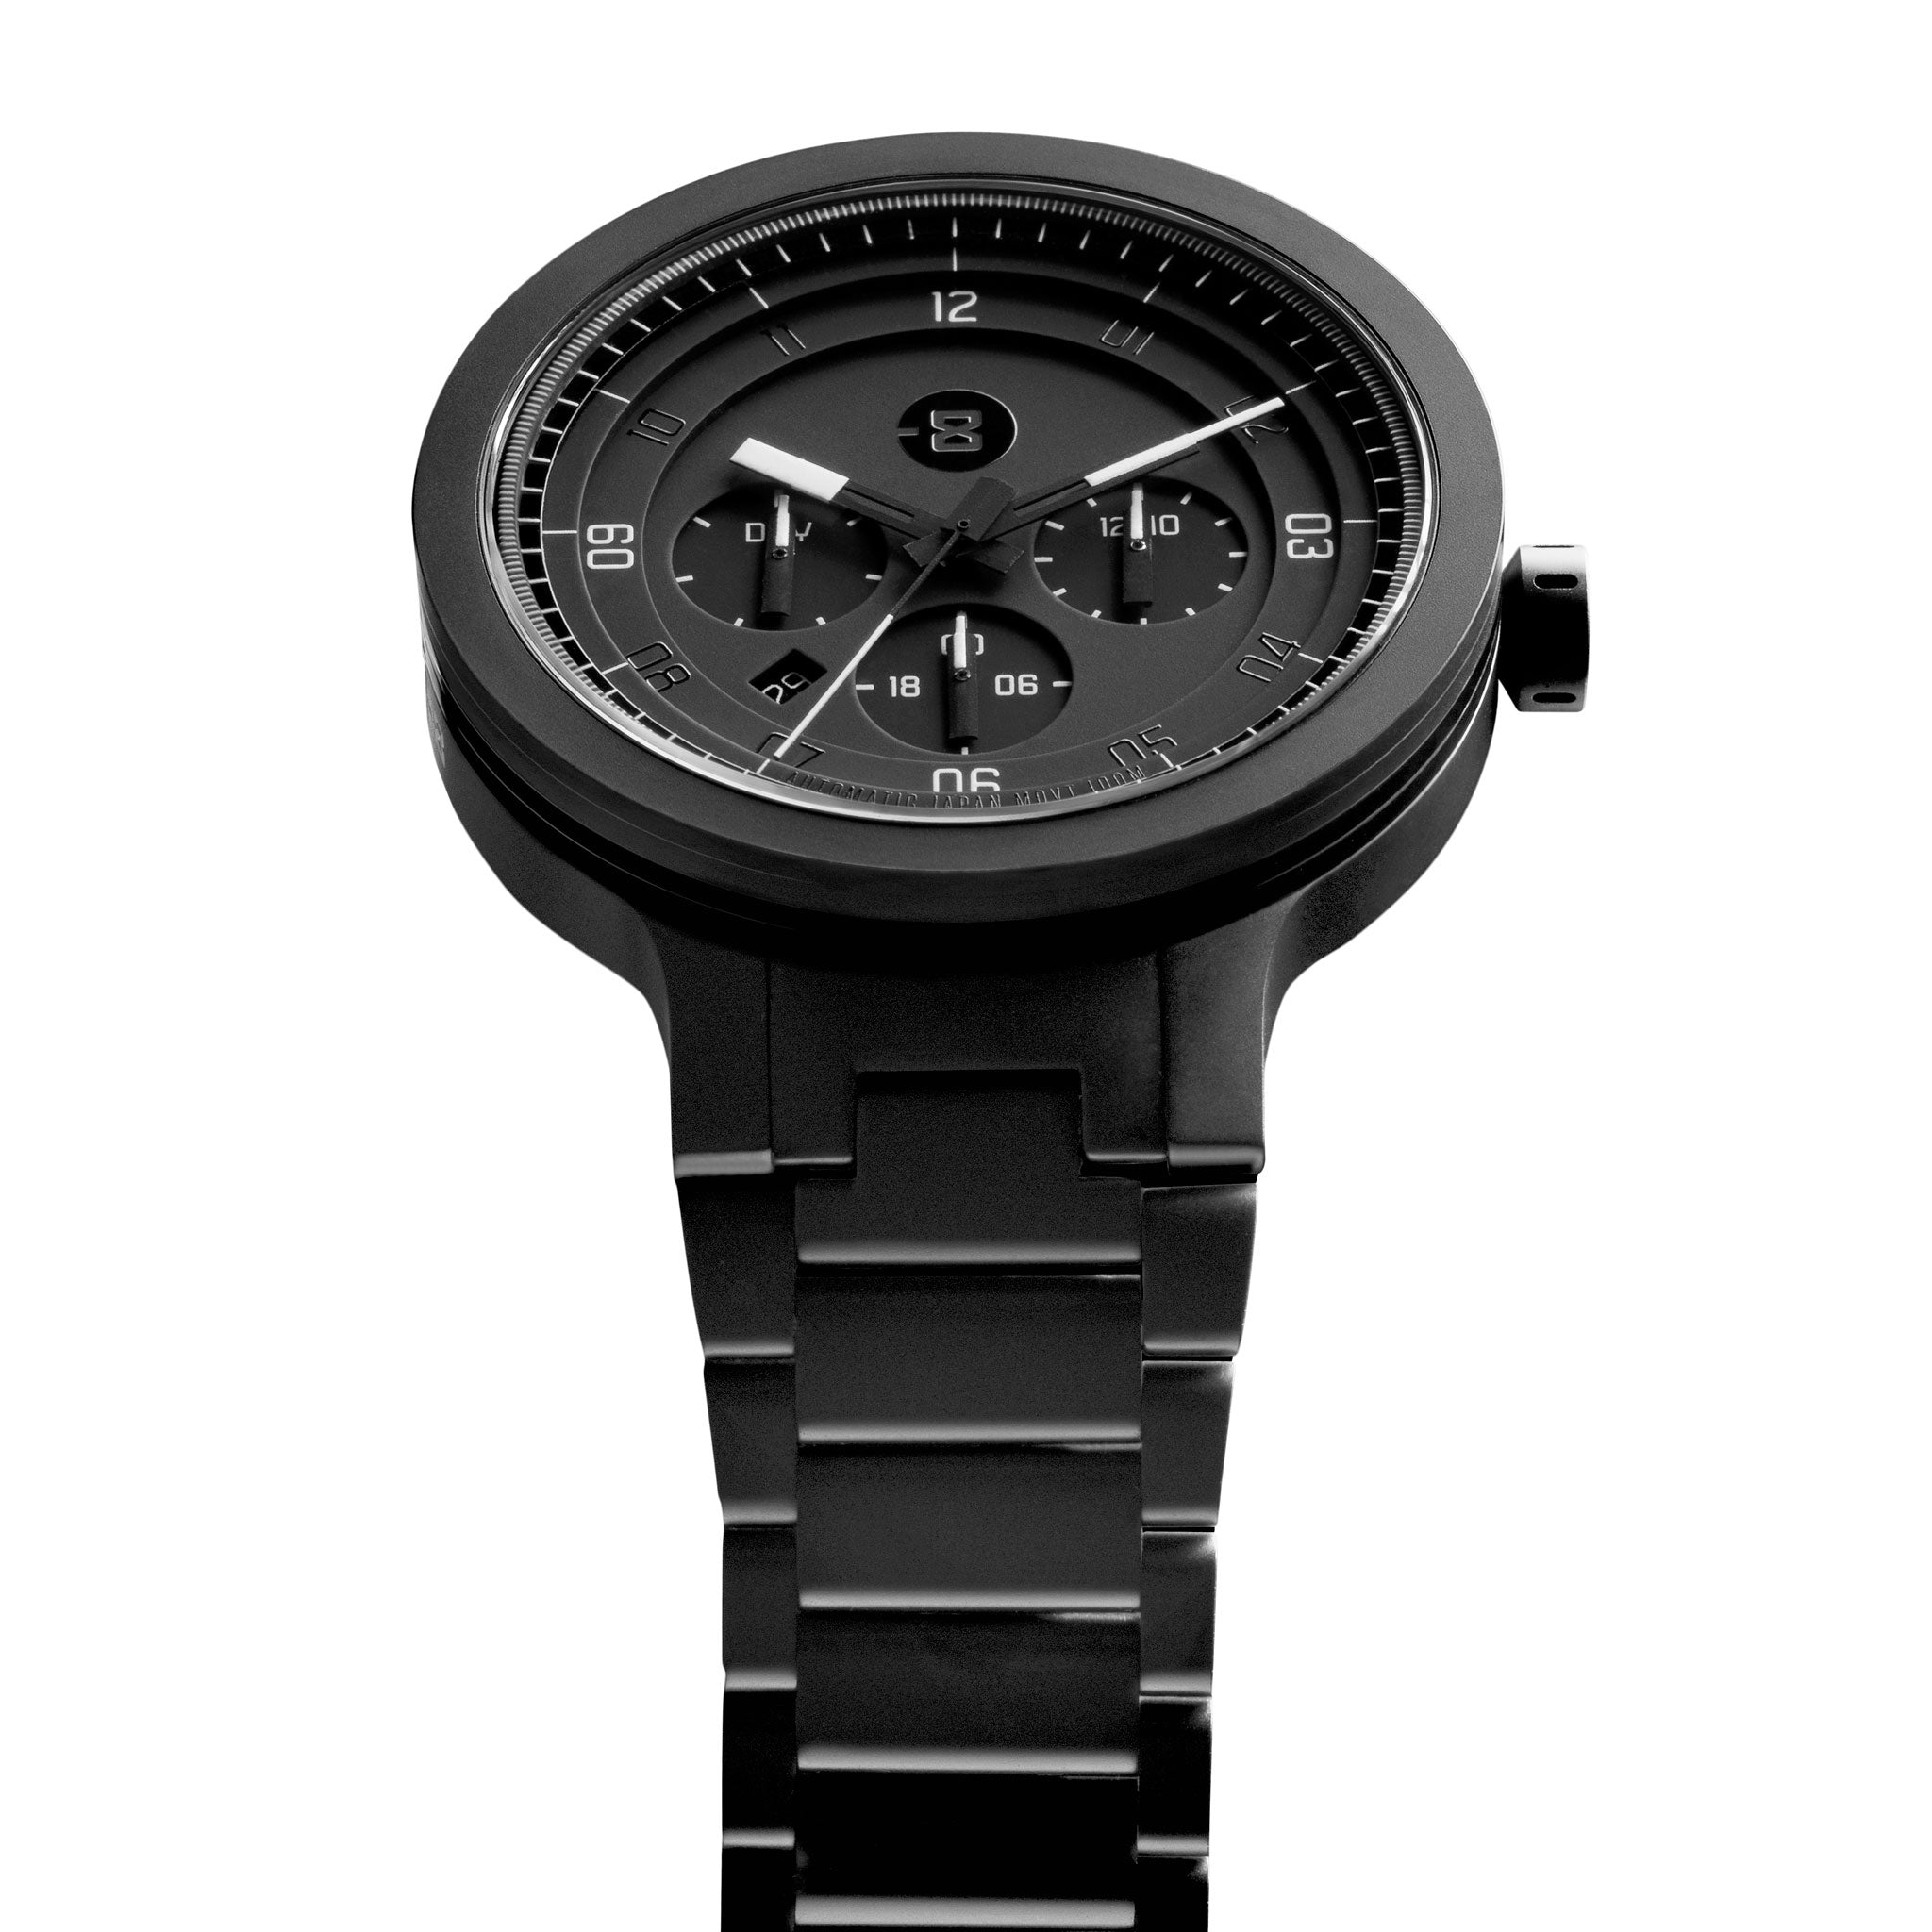 watches ltd in crystal mwc black pvd watch img automatic needs pattern mkiii edition military new products